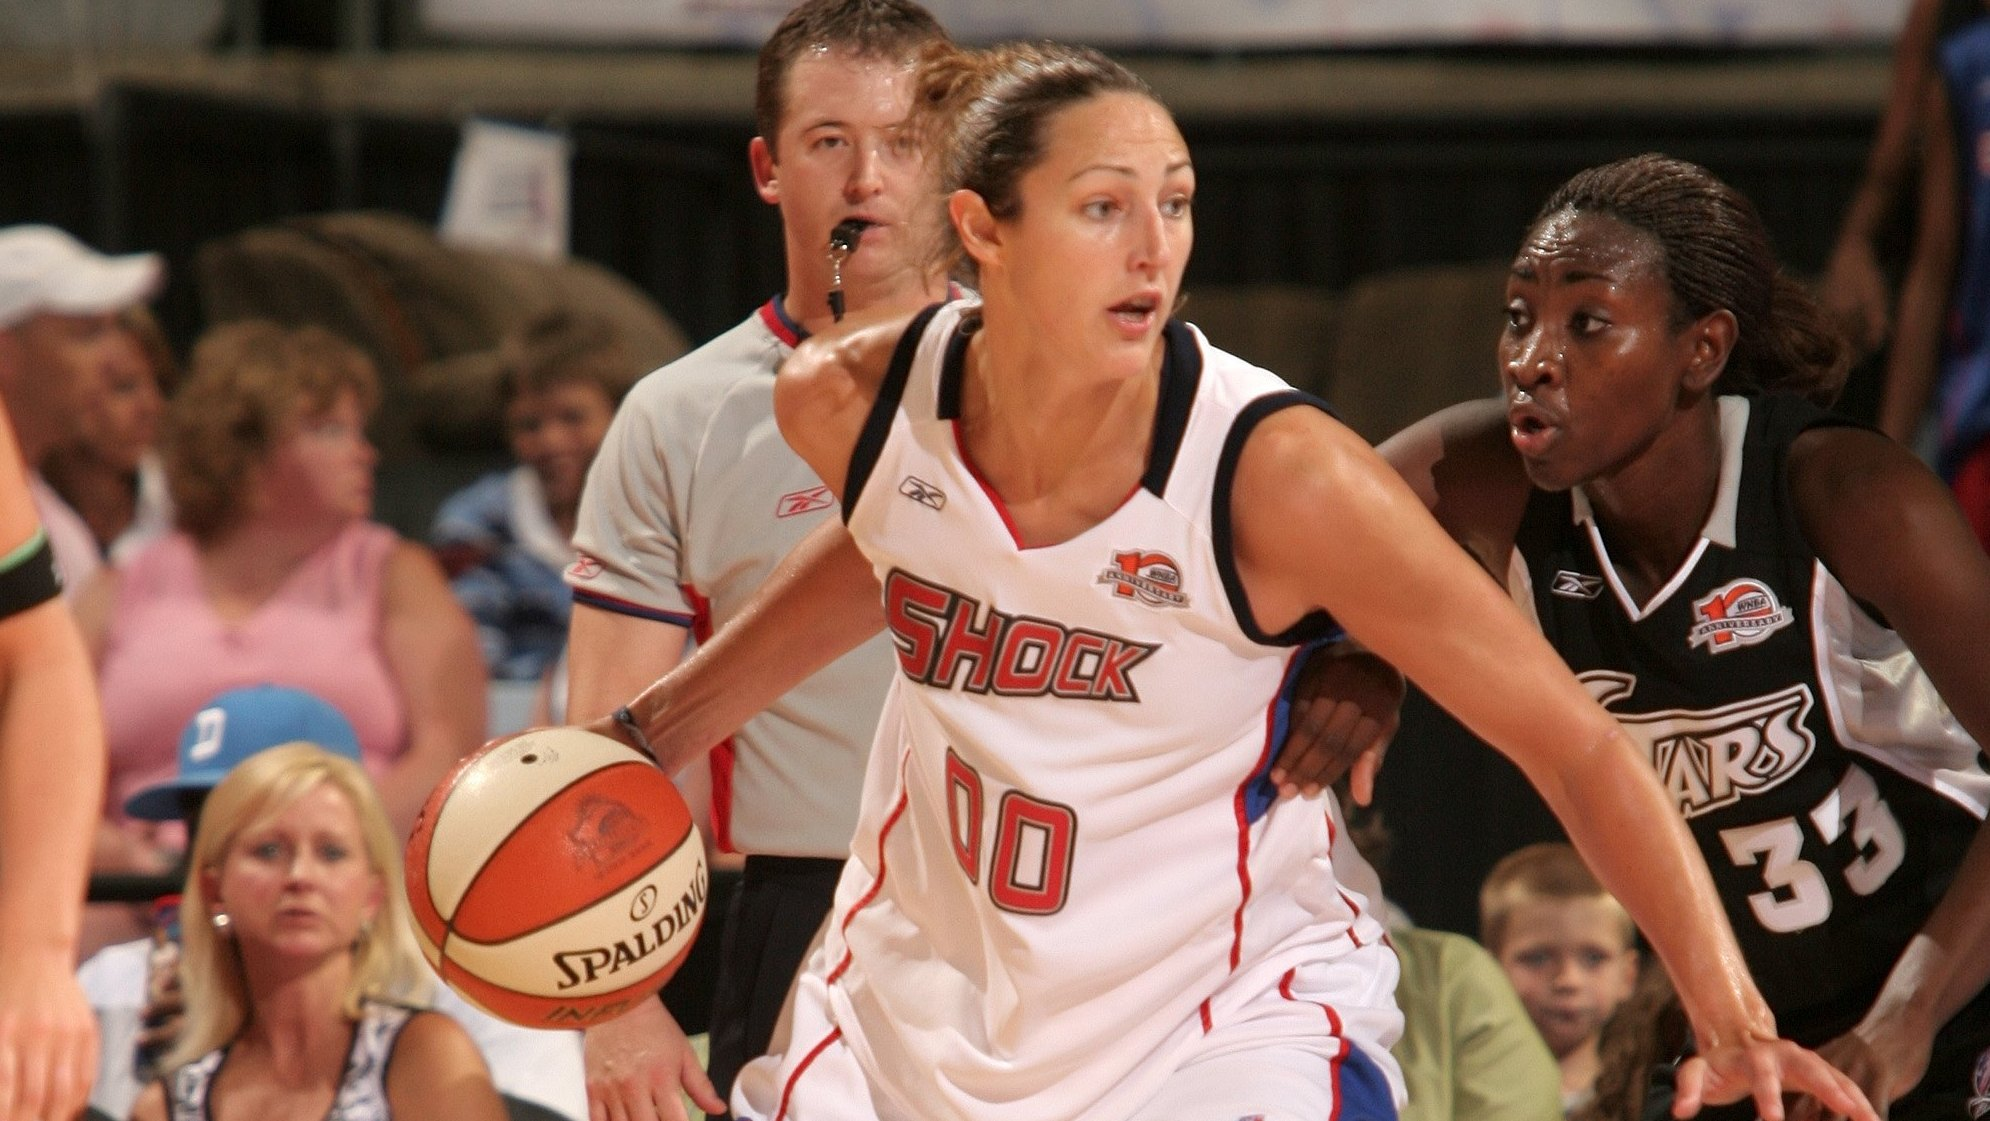 Dishin & Swishin 07/03/14 Podcast: Ruth Riley calls it a career, and what a career it was!